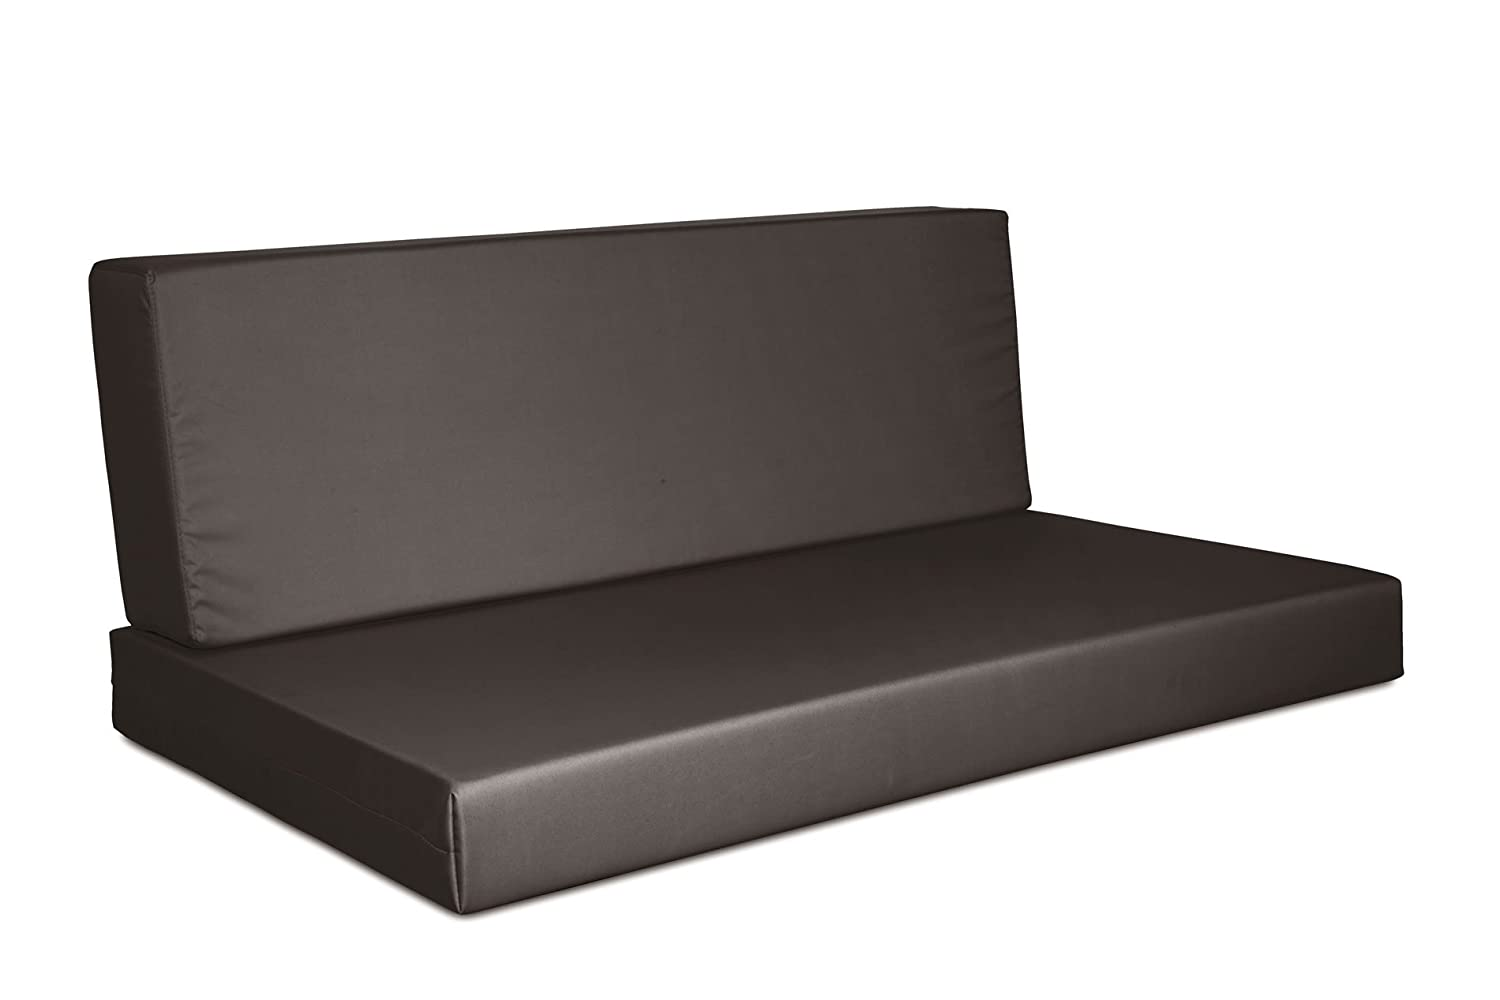 Kadusi Sofa Chill out (Asiento + Respaldo) con Tejido Impermeable